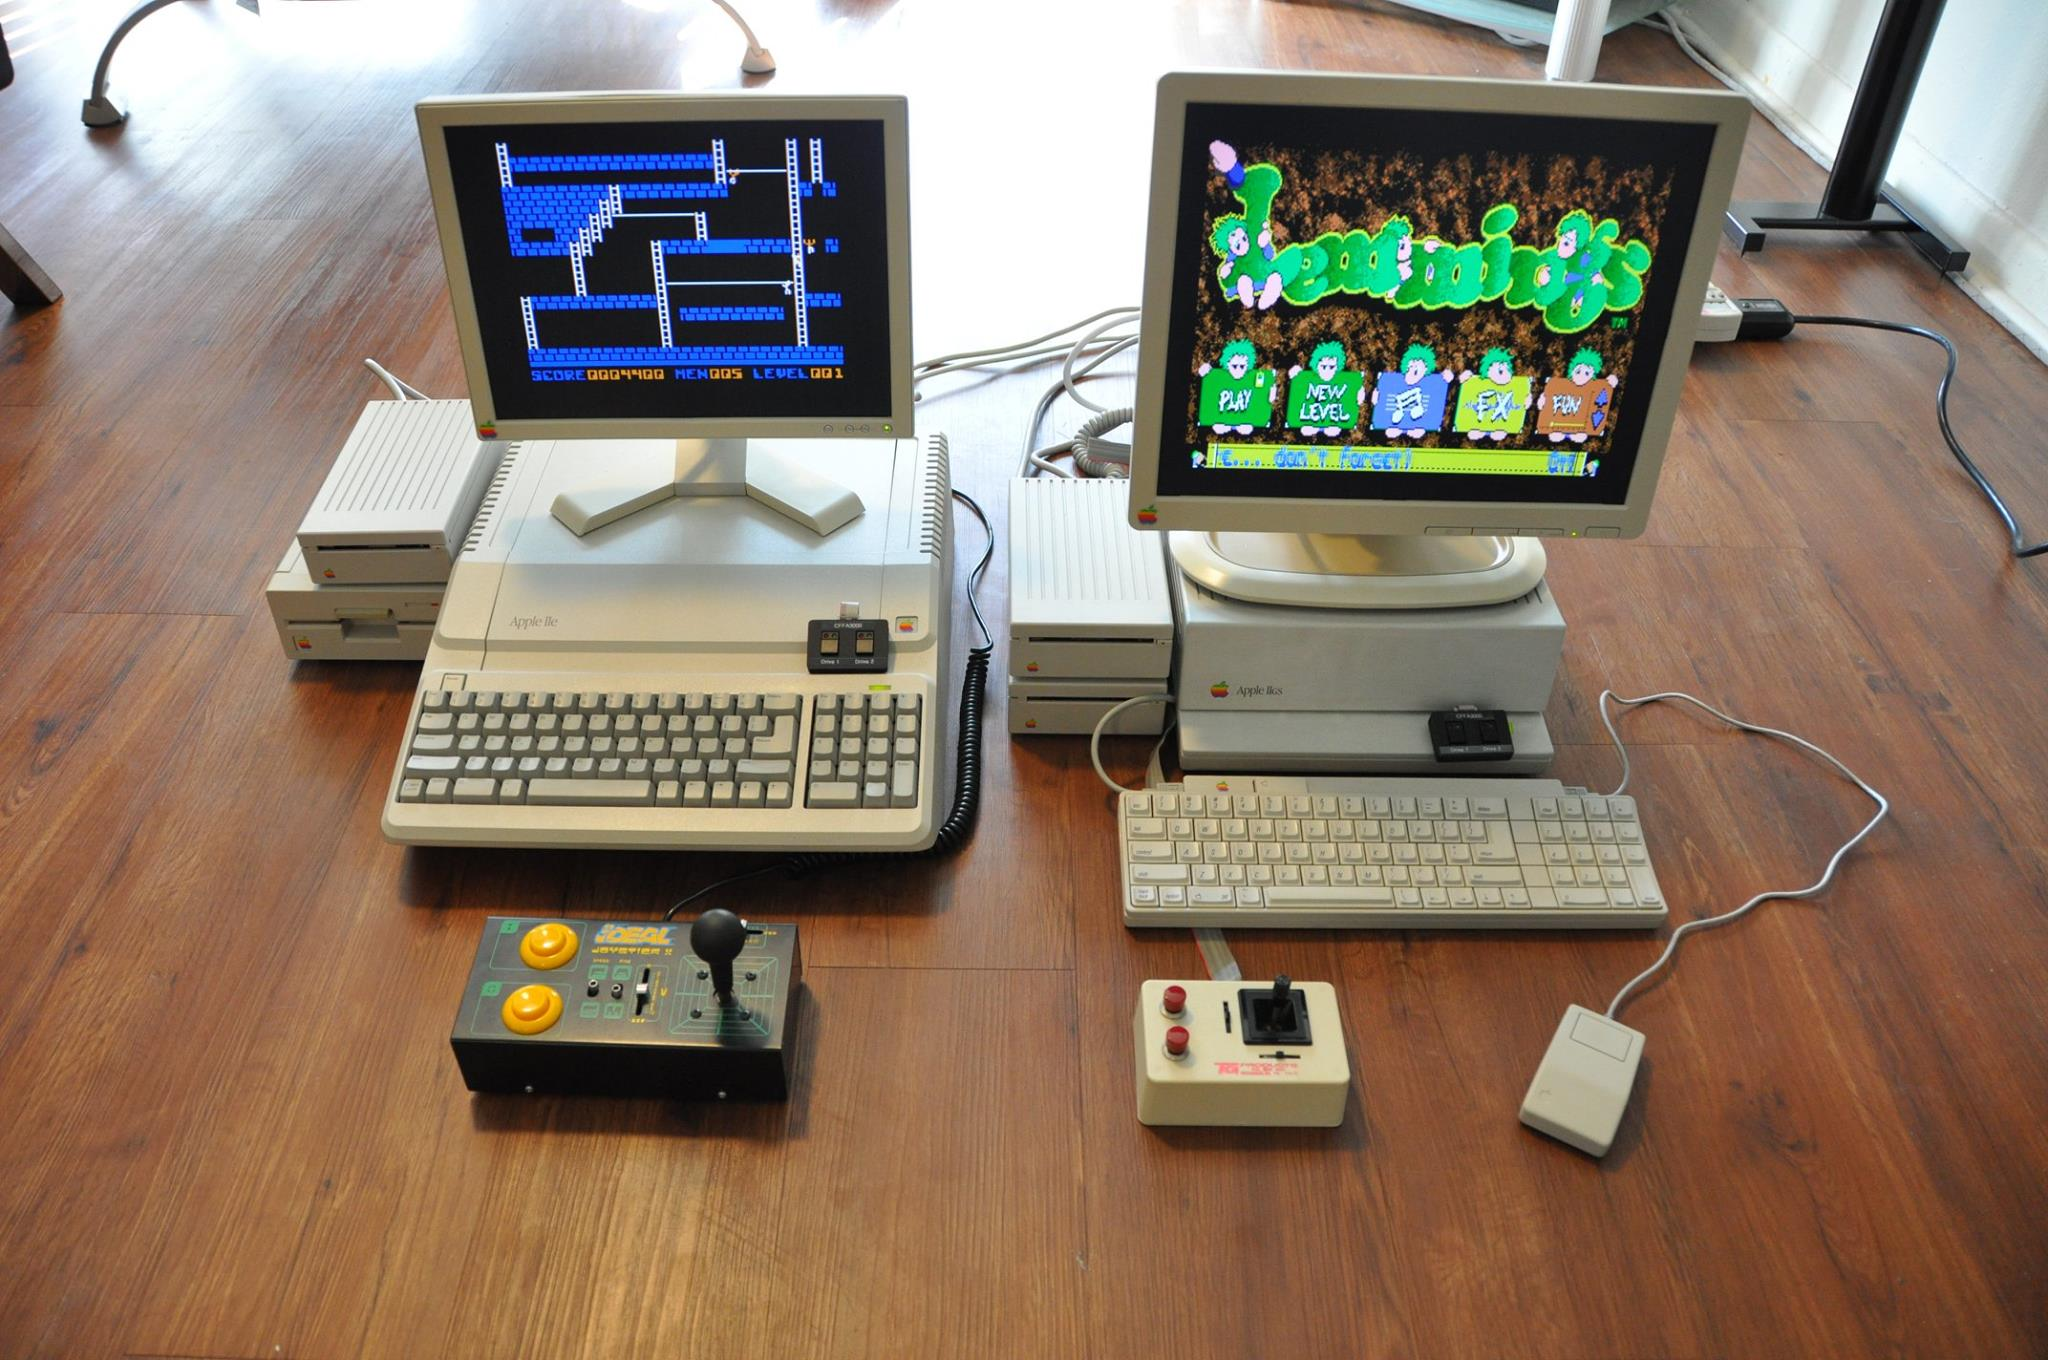 Apple //e Platinum and Apple IIgs